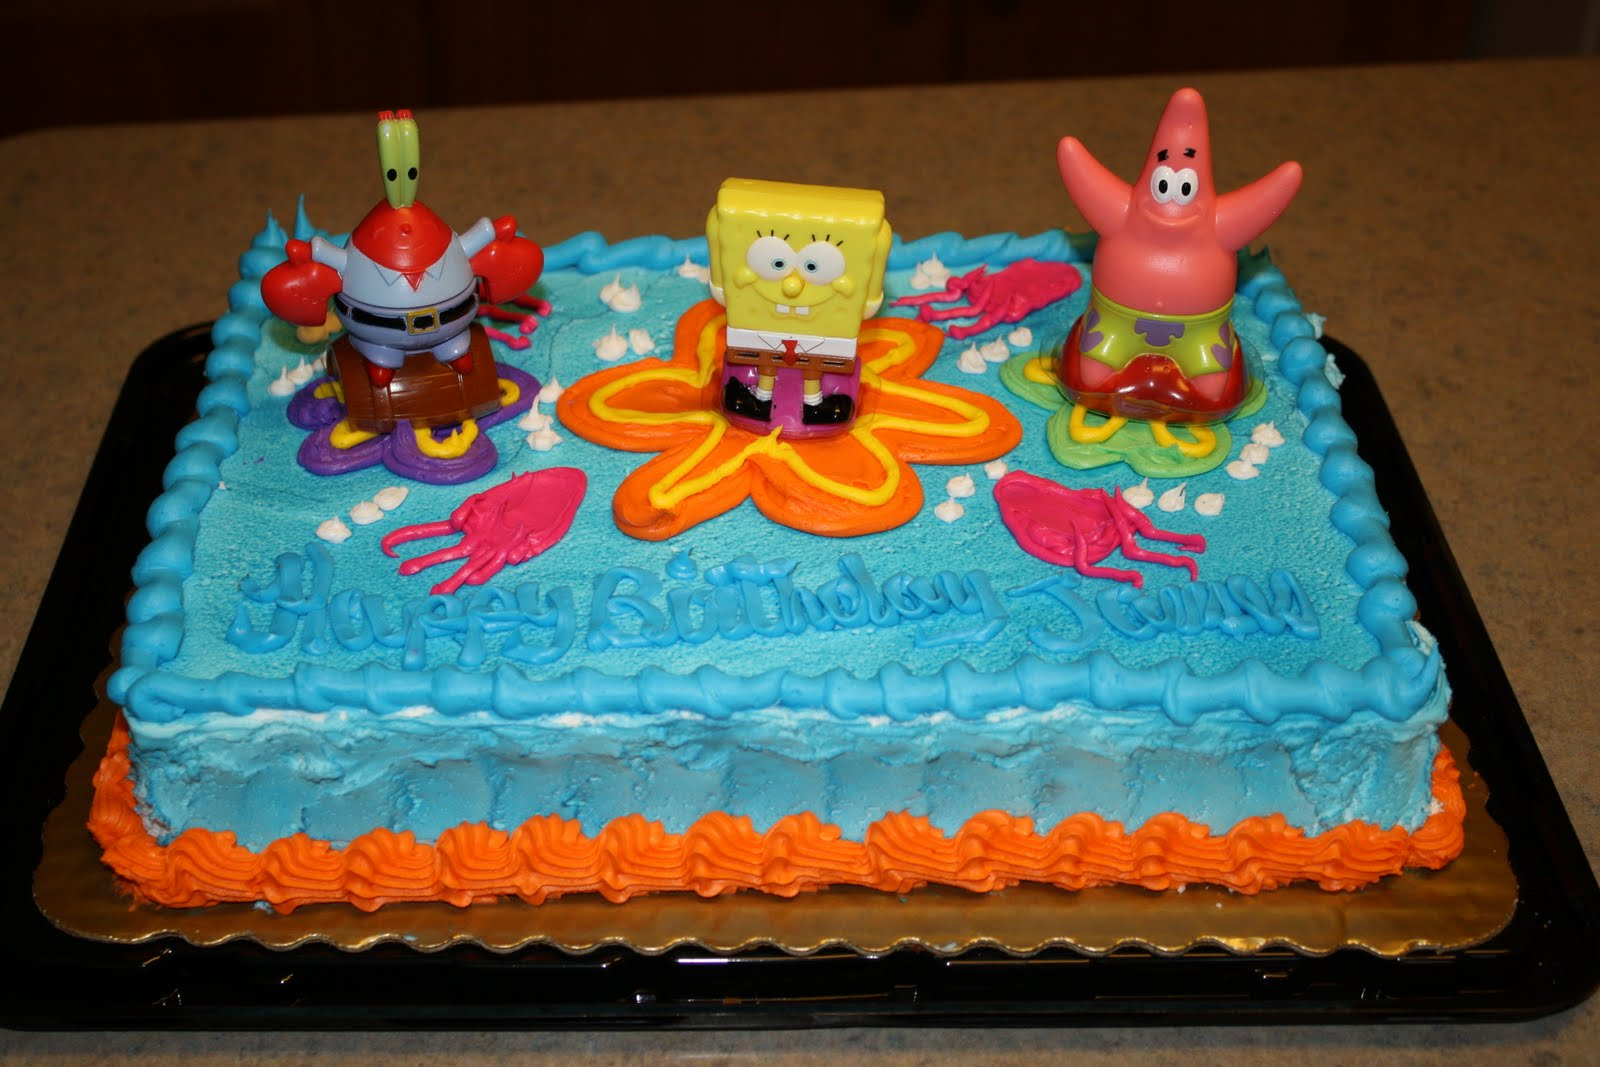 The bowling family james 4th birthday after changing his mind several times james decided on a spongebob cake for his birthday he also thought jesus would like a spongebob cake at christmas thecheapjerseys Images